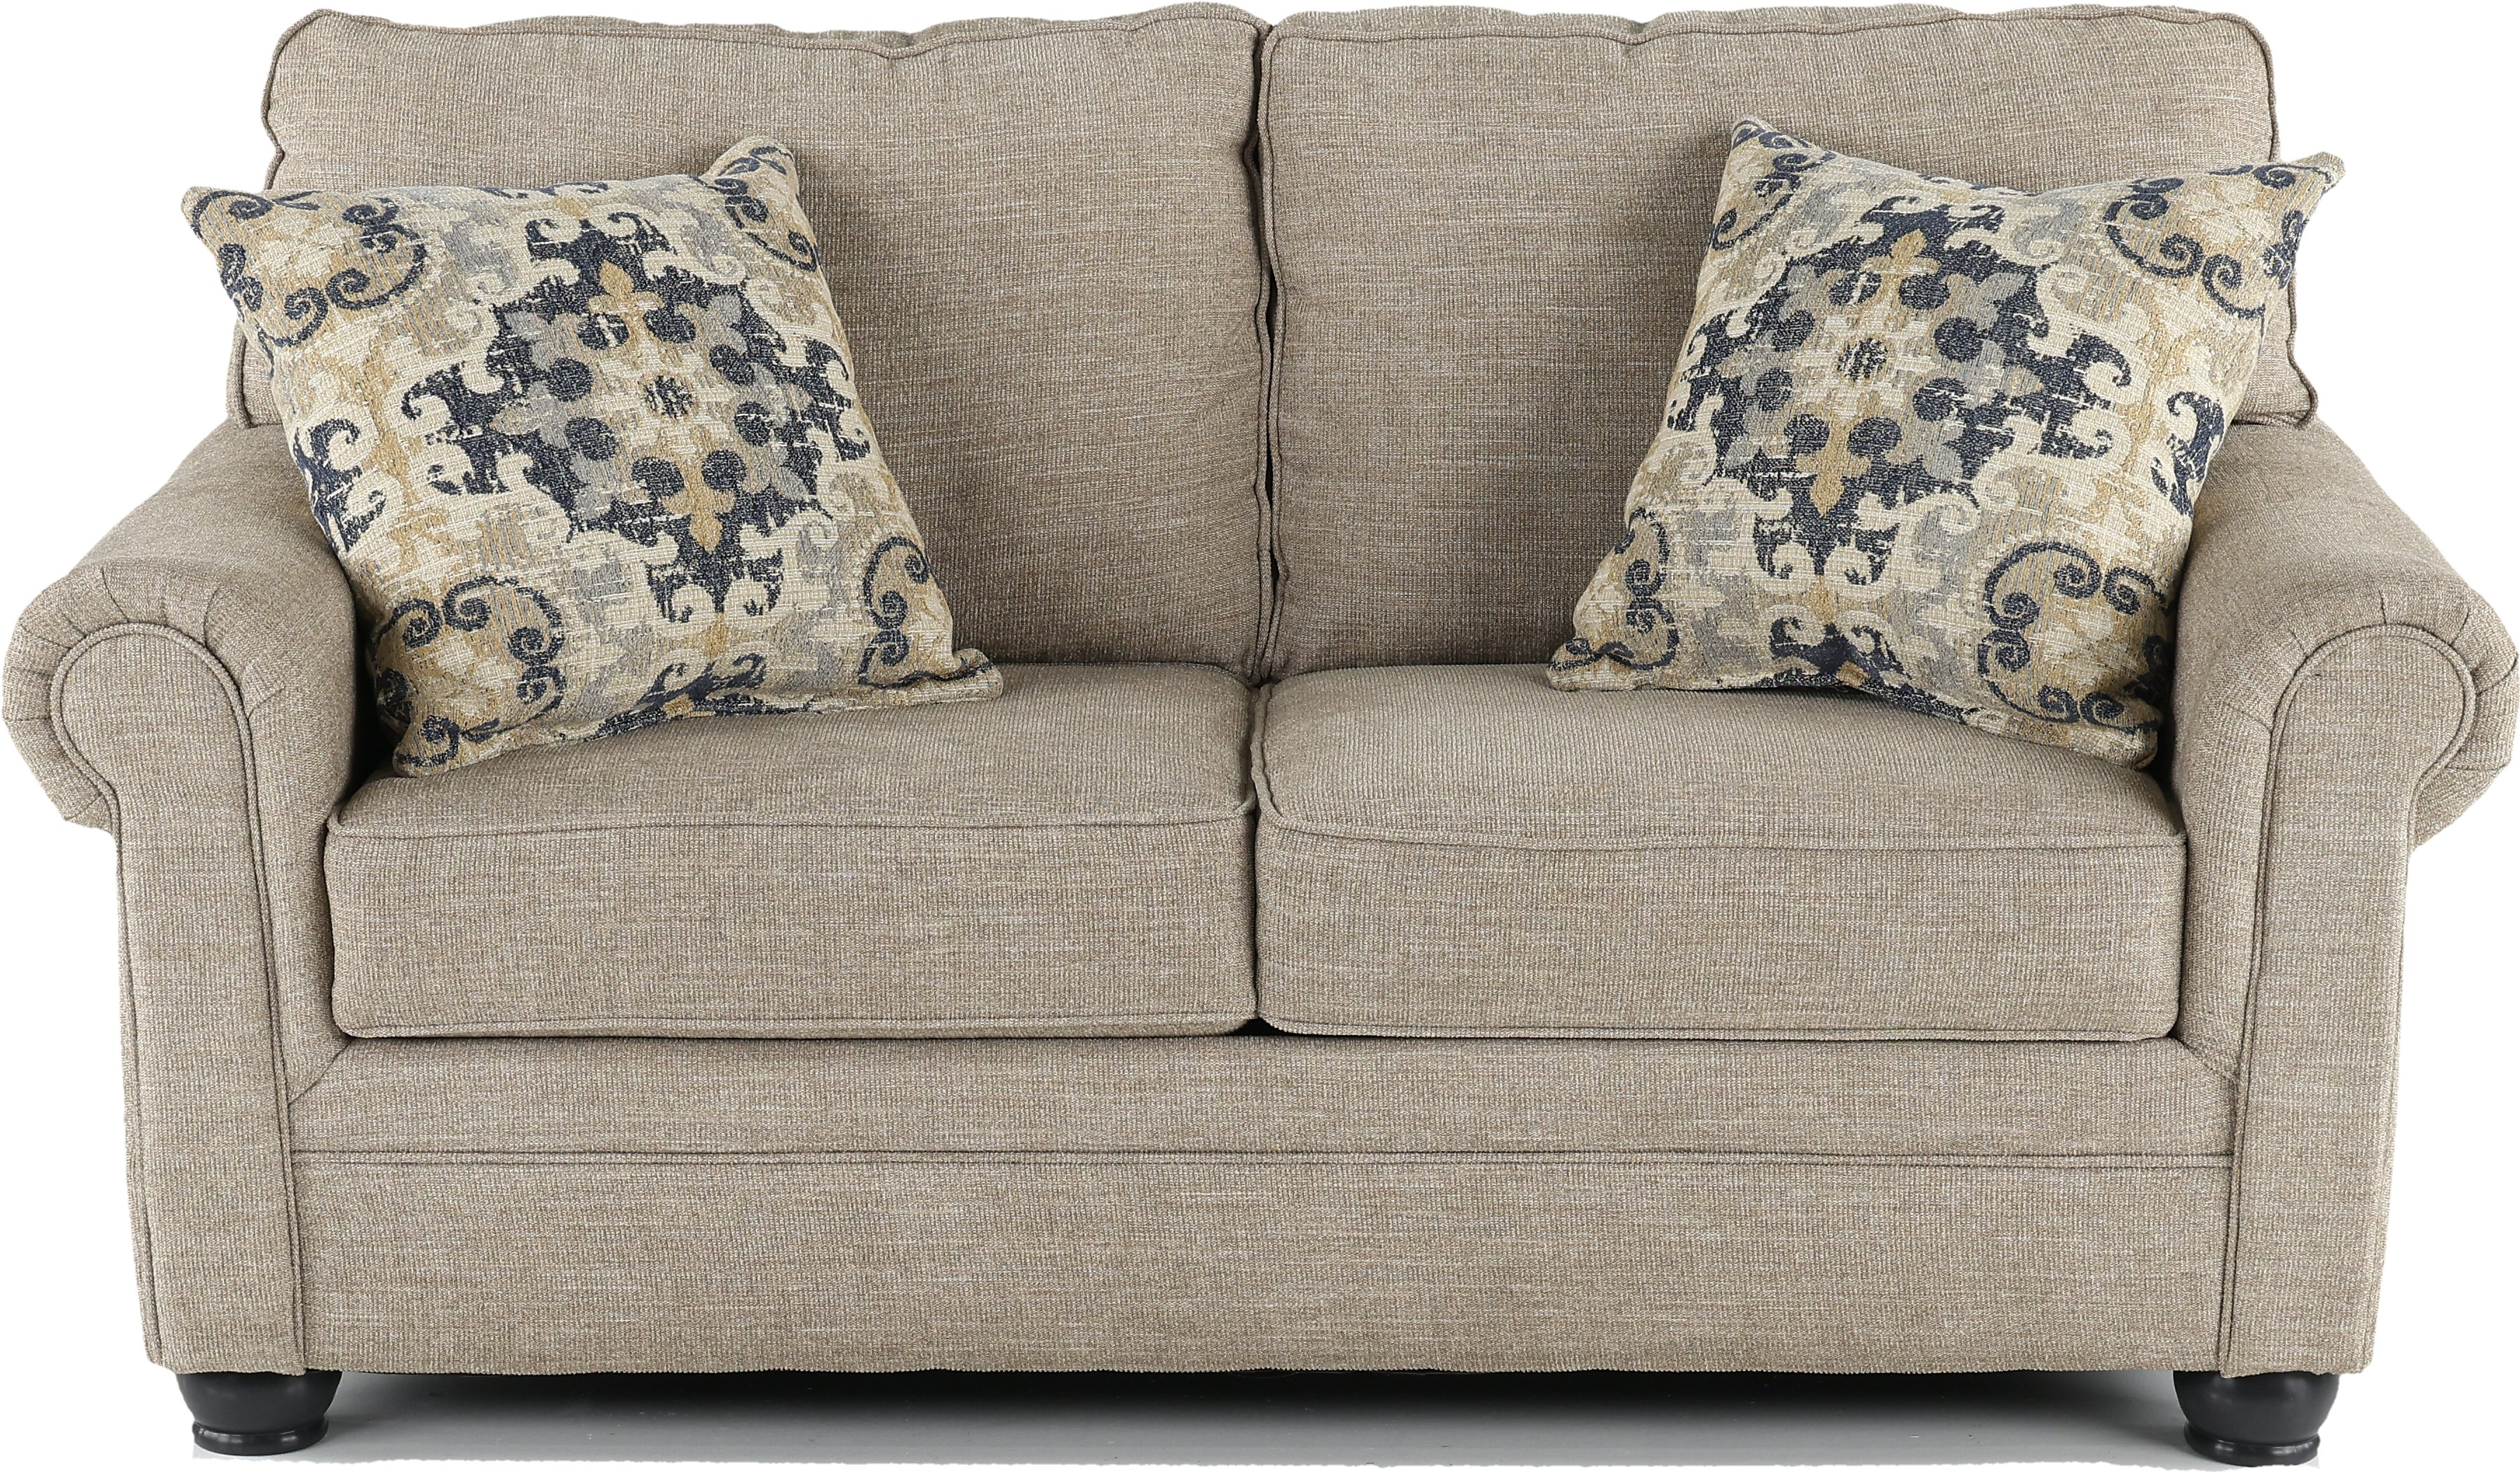 Casual Traditional Taupe Sofa Sleeper Loveseat Set Heather Rc Willey Furniture Store